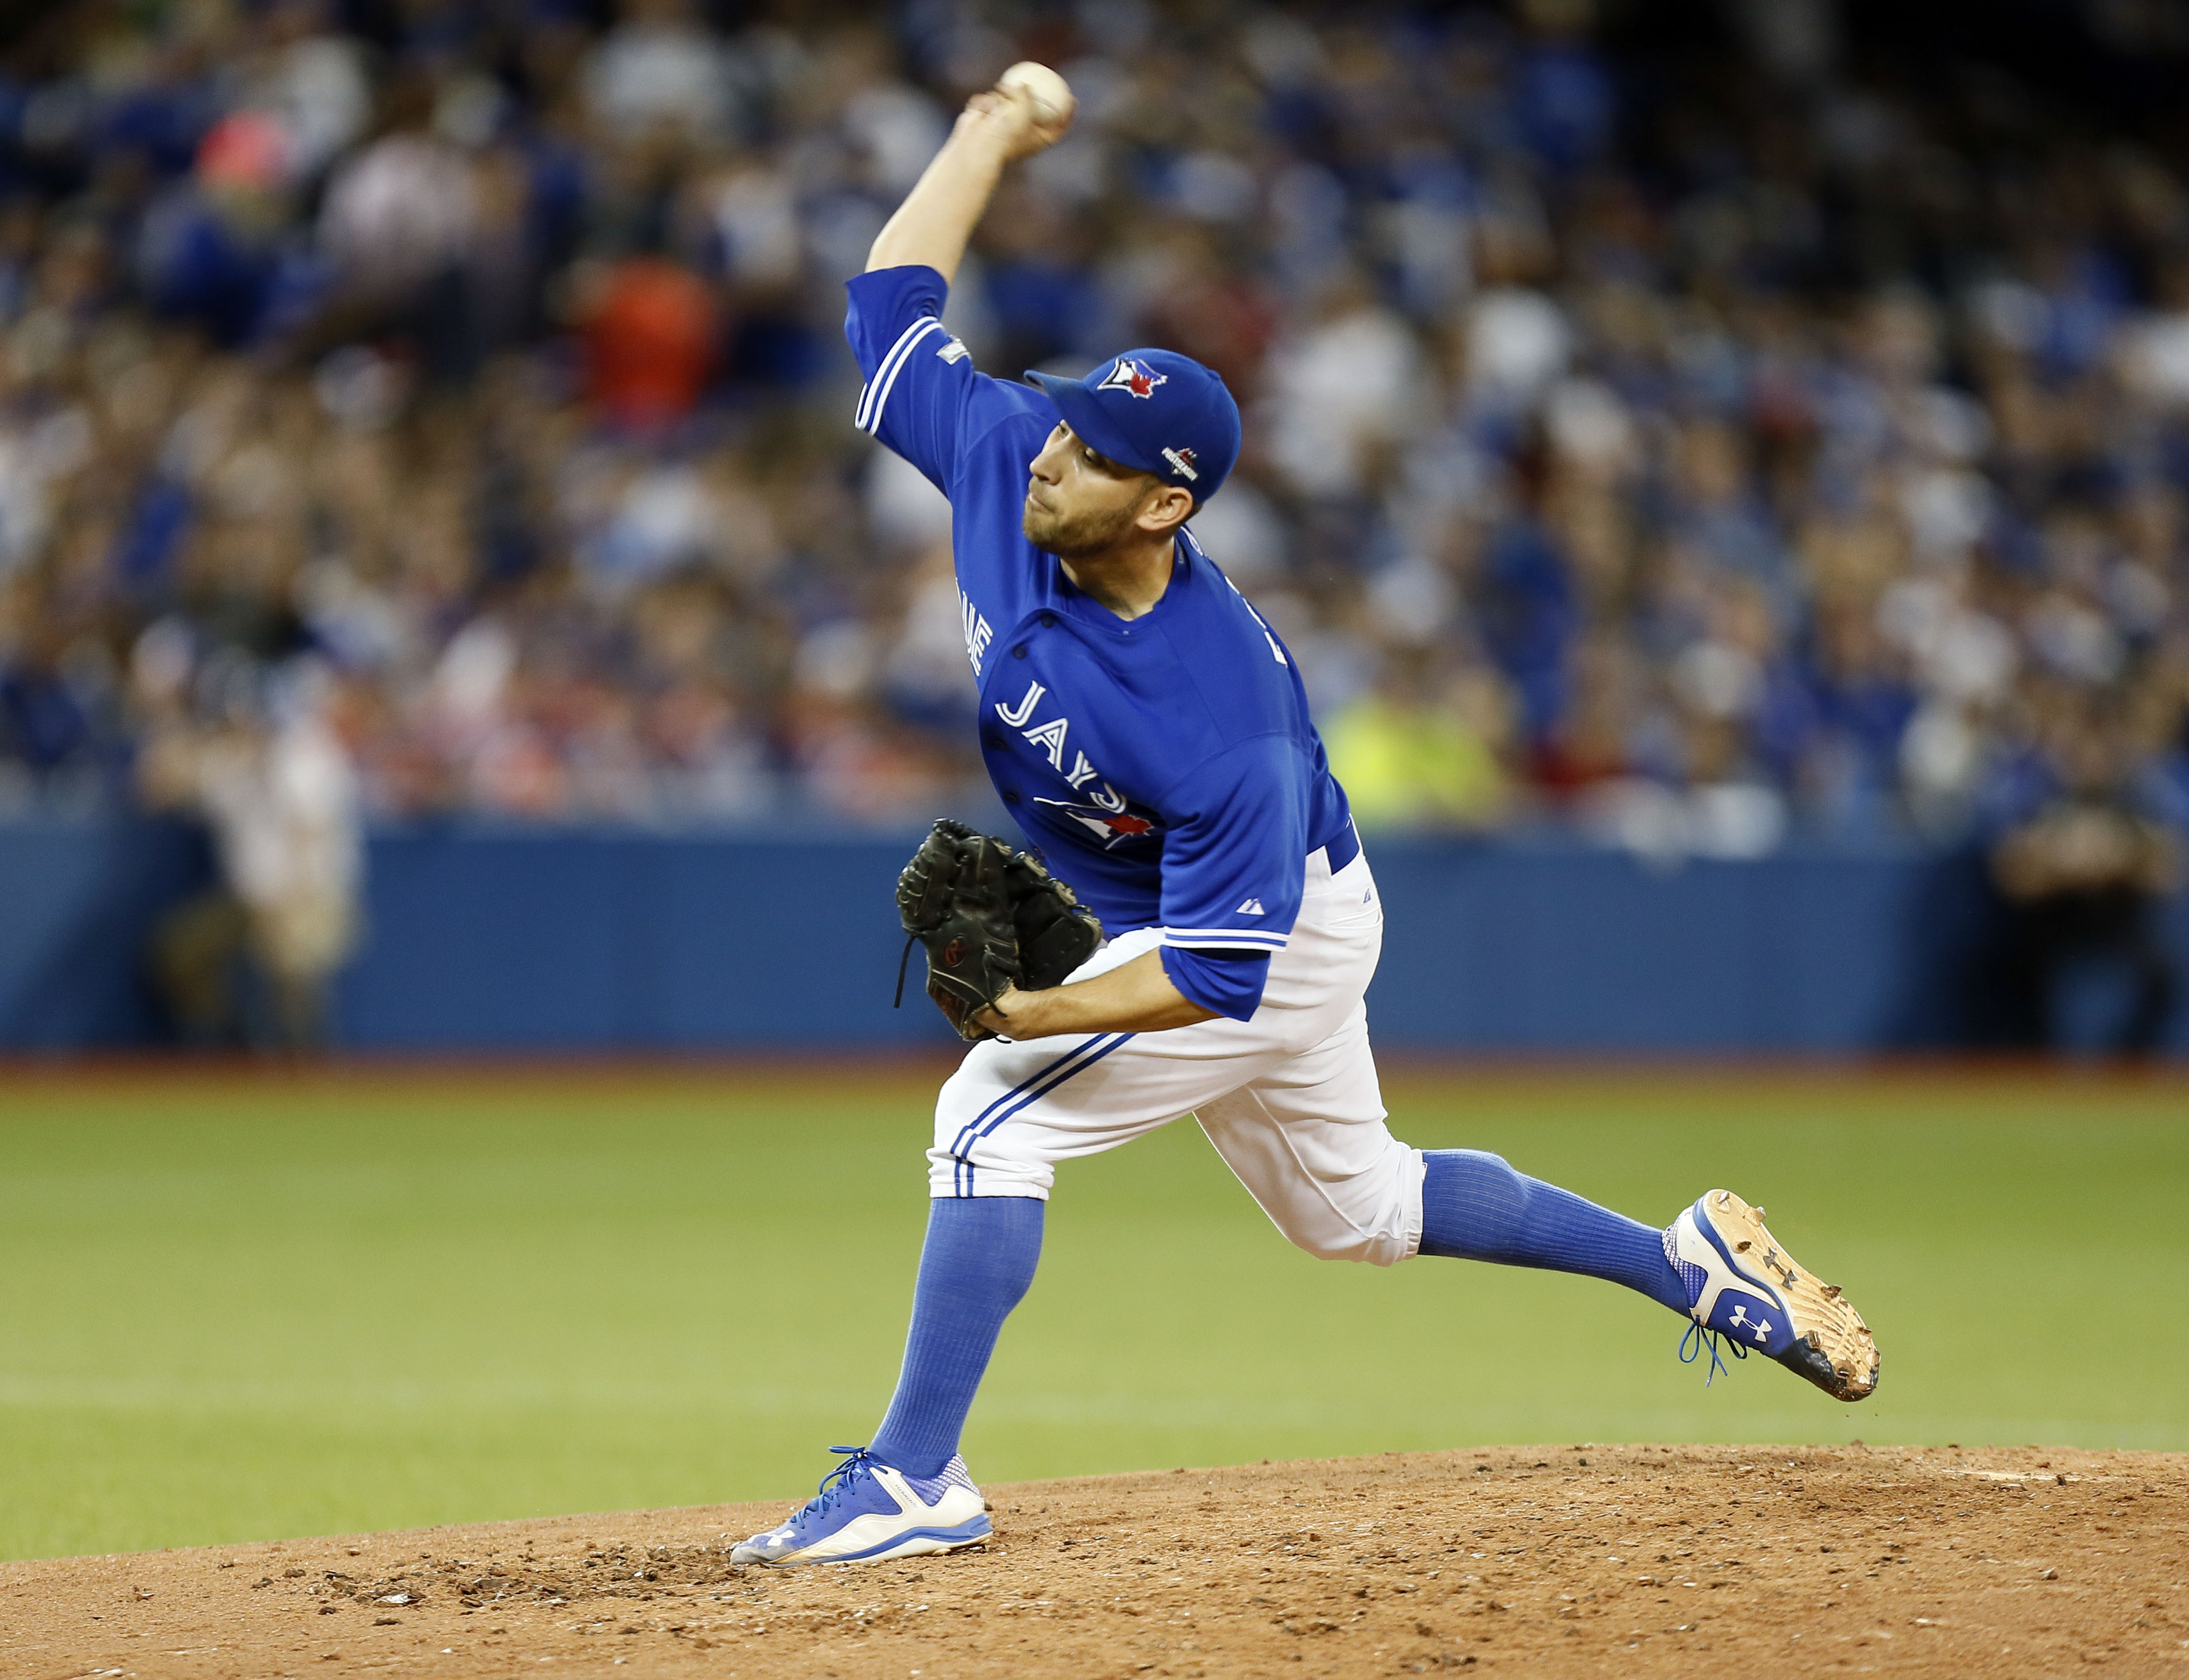 Former Nats pitcher Marco Estrada was one of twenty players who were tendered a qualifying offer by their former teams on Friday. Could he be the first player ever to accept the QO?